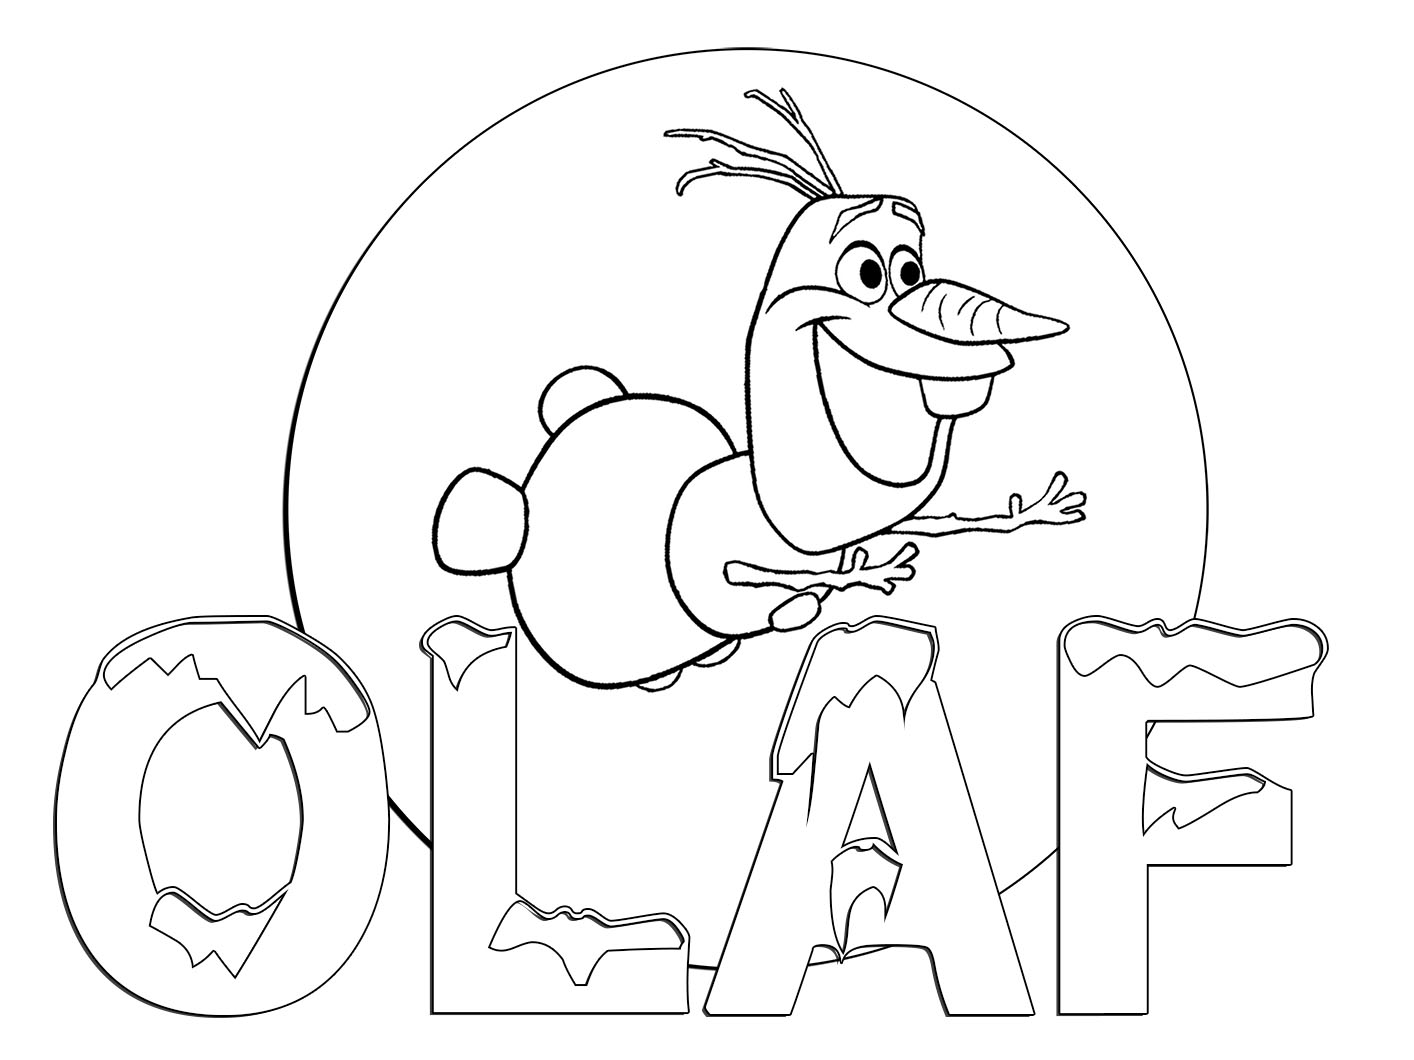 children coloring book pages - photo#11